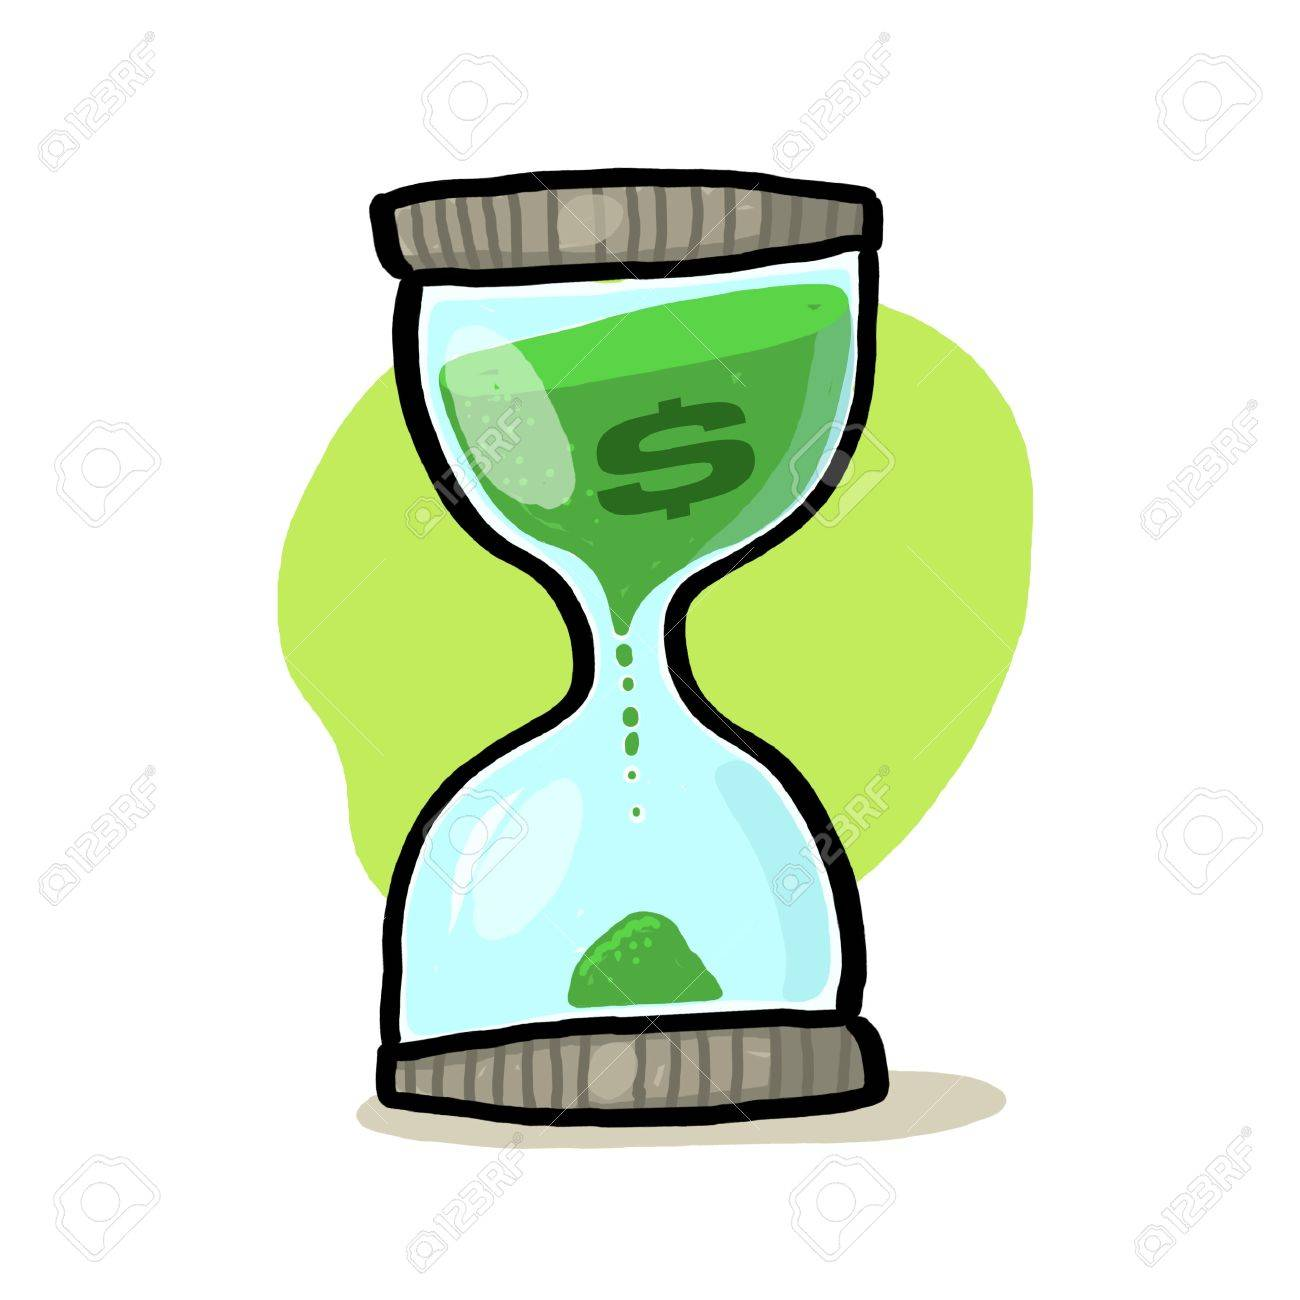 Hourglass with dollar sign illustration; Sand glass with dollar sign drawing; Hourglass Illustration; Time and money Stock Photo - 9703453